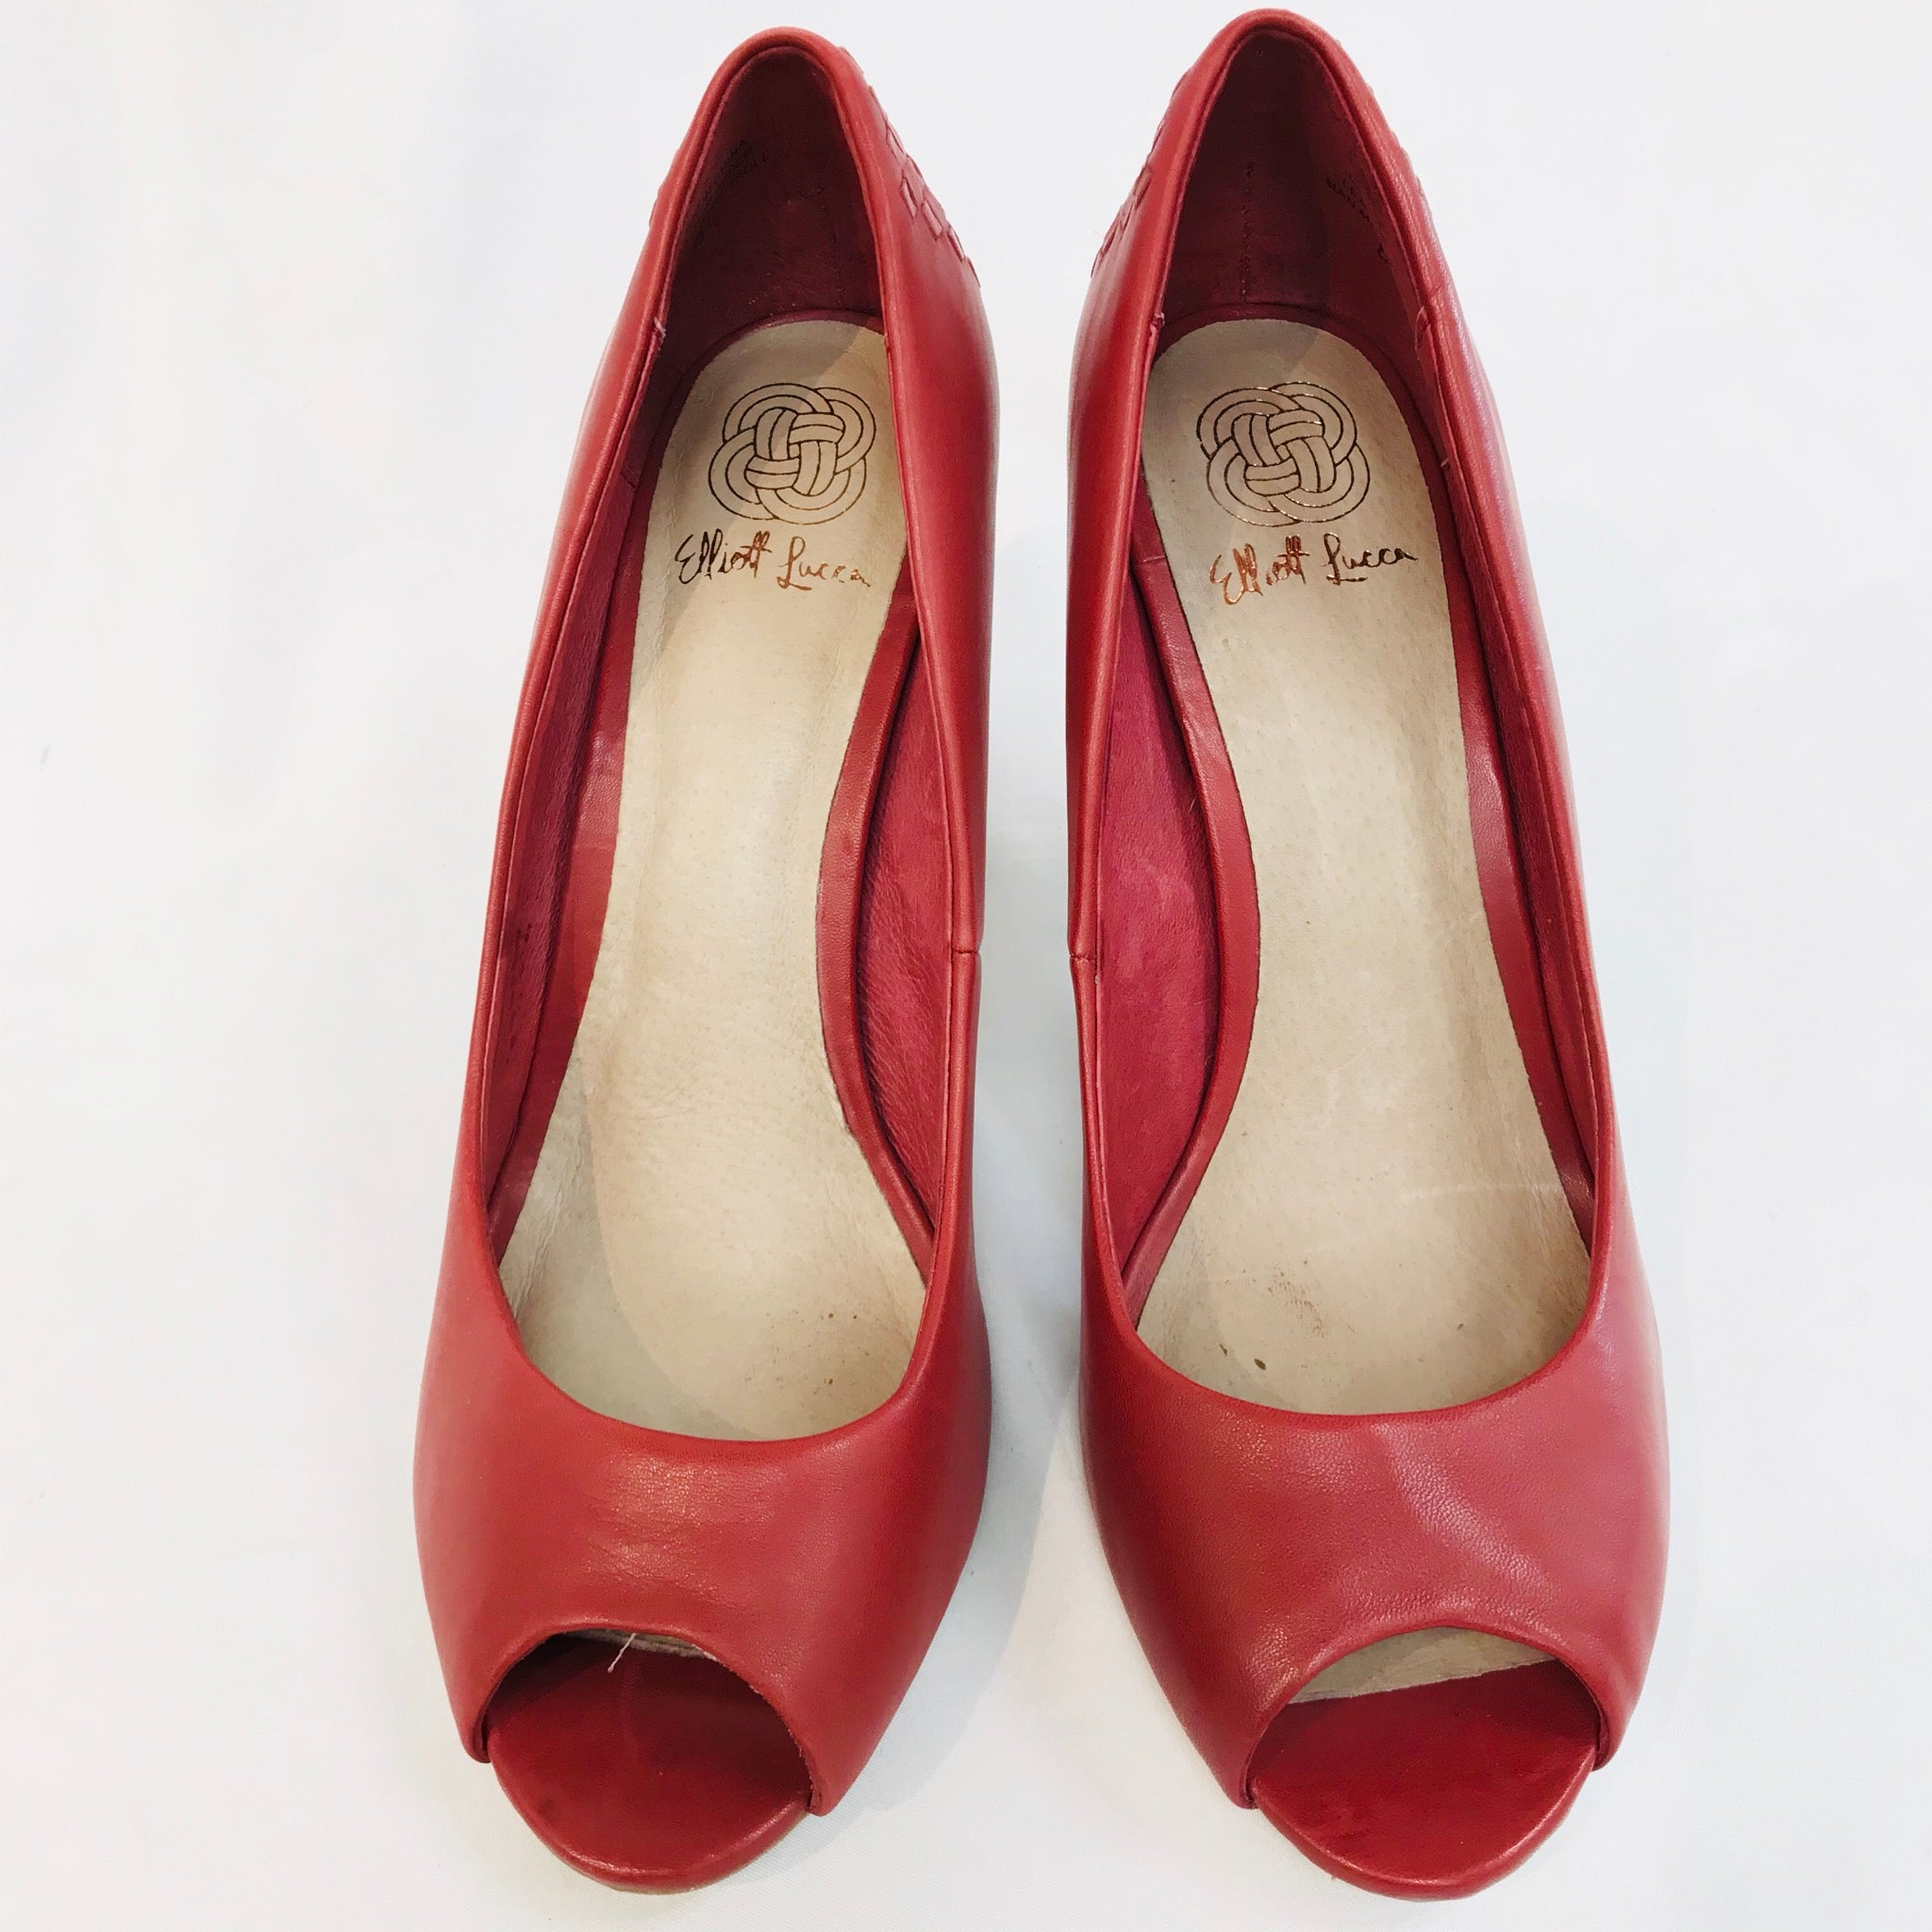 Primary Photo - BRAND: ELLIOT LUCCA <BR>STYLE: SHOES HIGH HEELS<BR>COLOR: RED <BR>SIZE: 8.5 <BR>SKU: 262-26275-43576<BR>- AS IS -